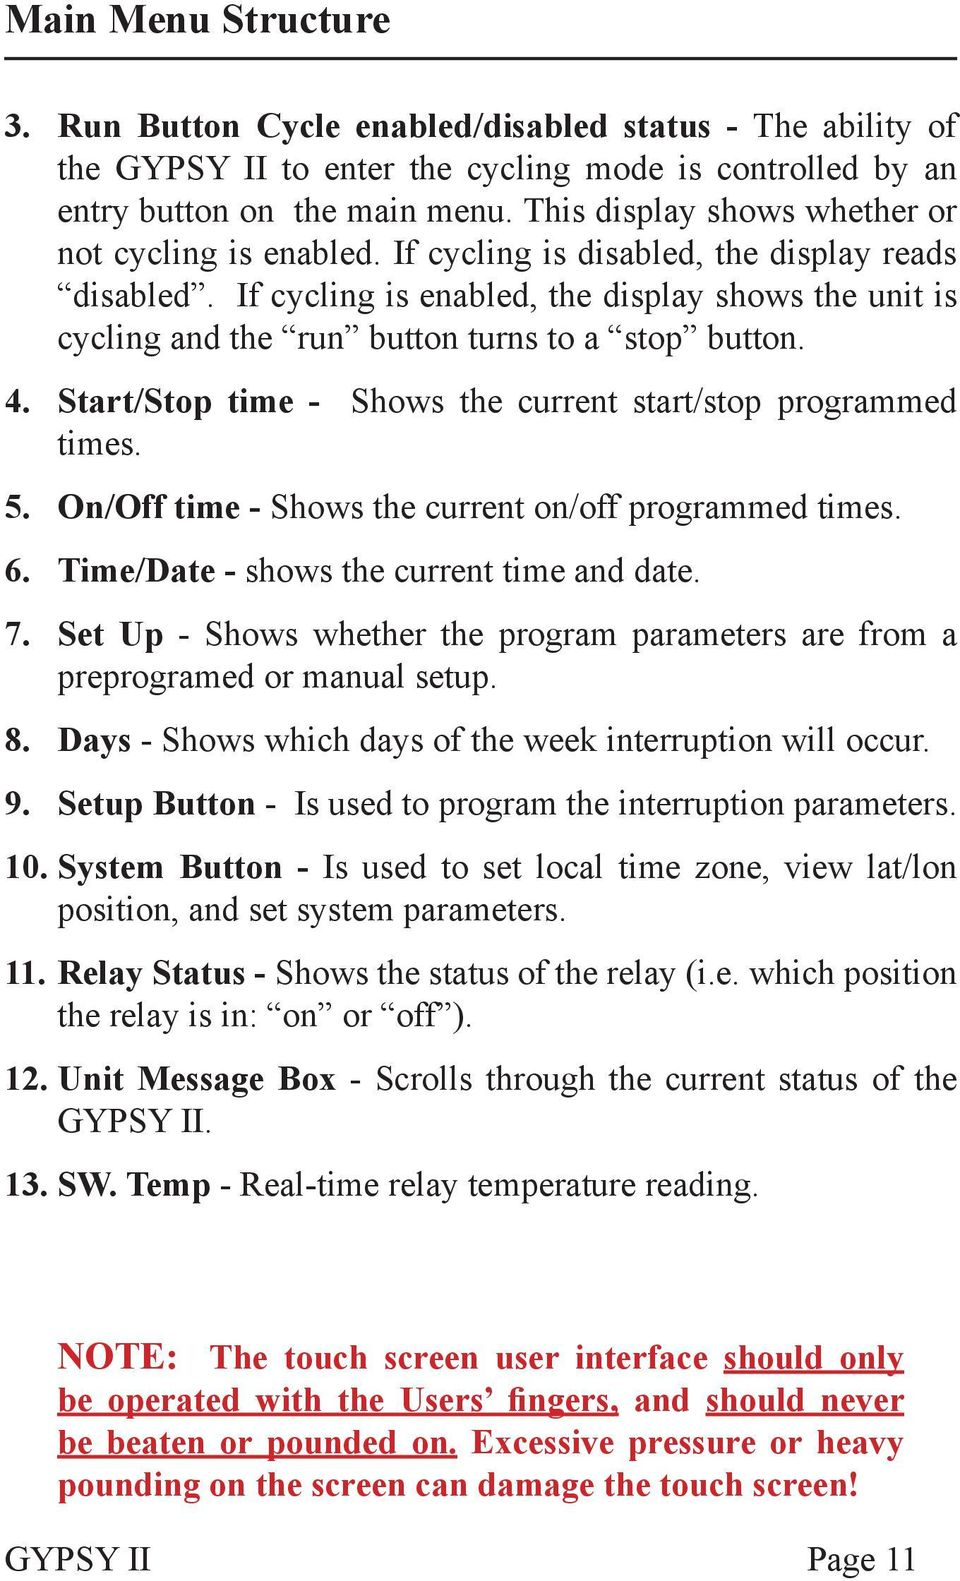 If cycling is enabled, the display shows the unit is cycling and the run button turns to a stop button. 4. Start/Stop time - Shows the current start/stop programmed times. 5.